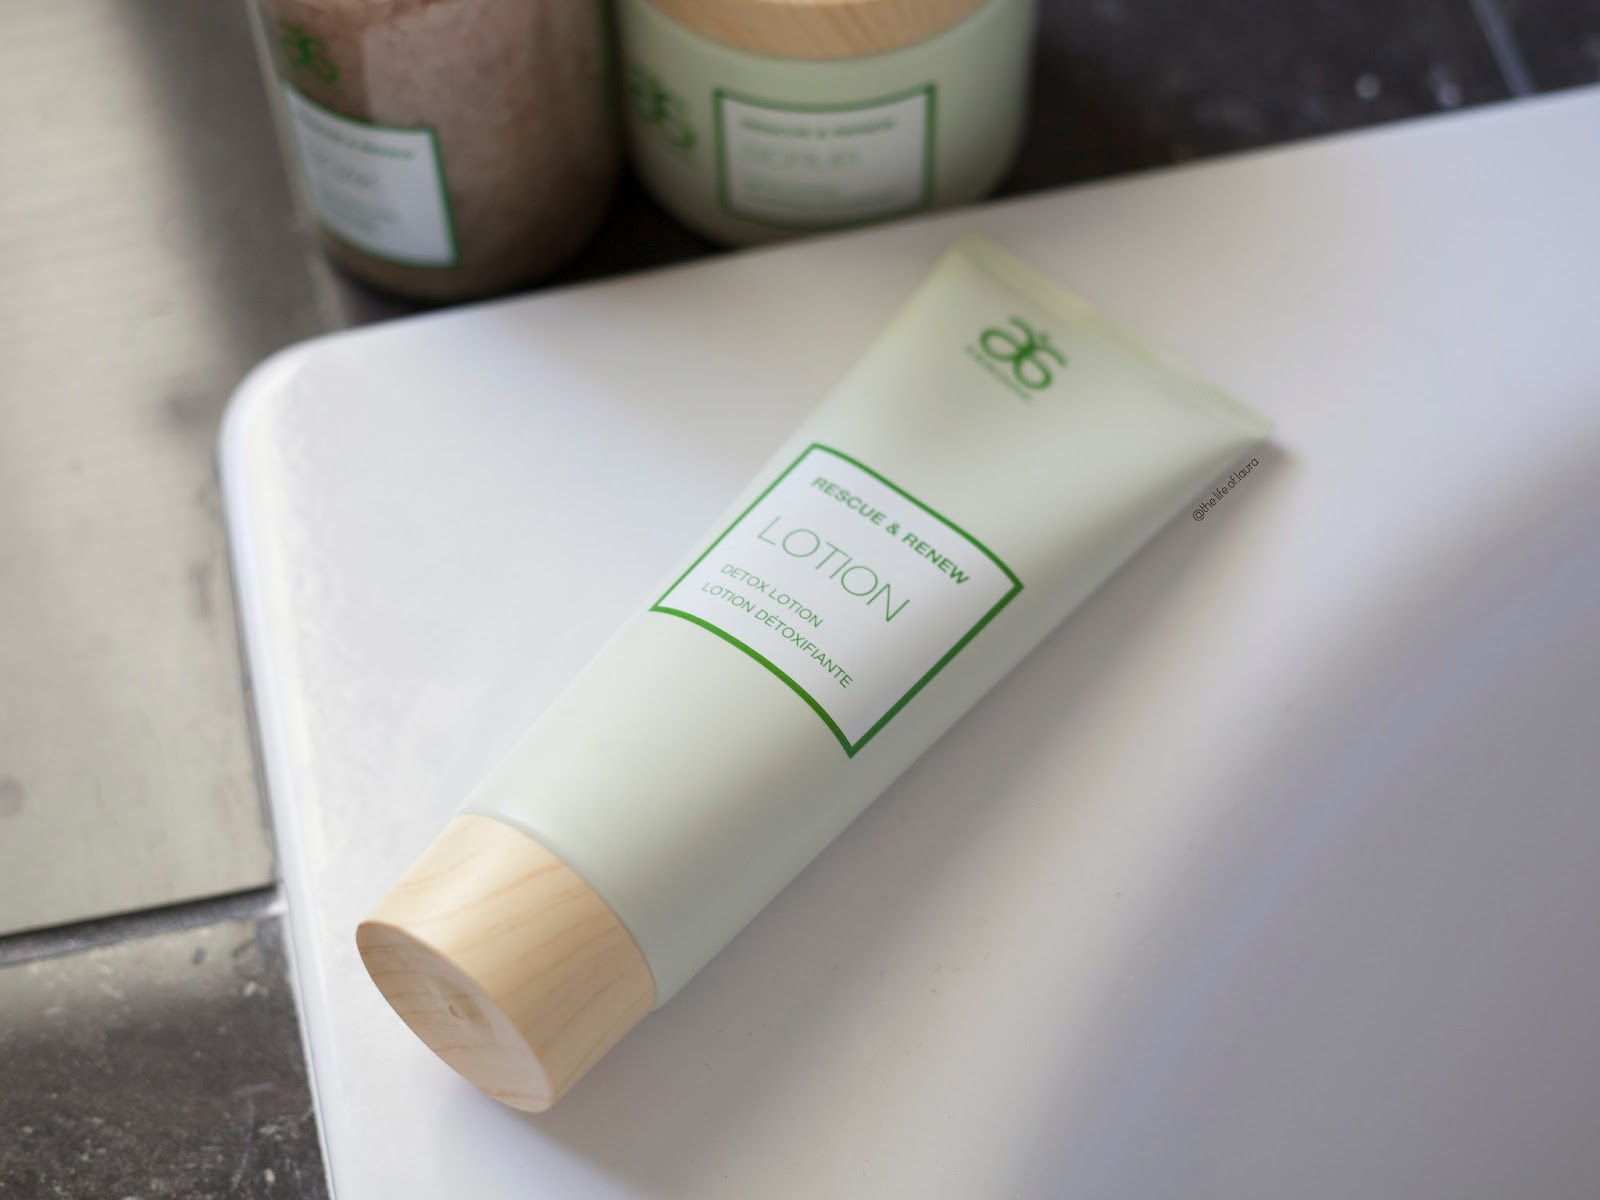 Arbonne Rescue and Renew Detox Body Lotion